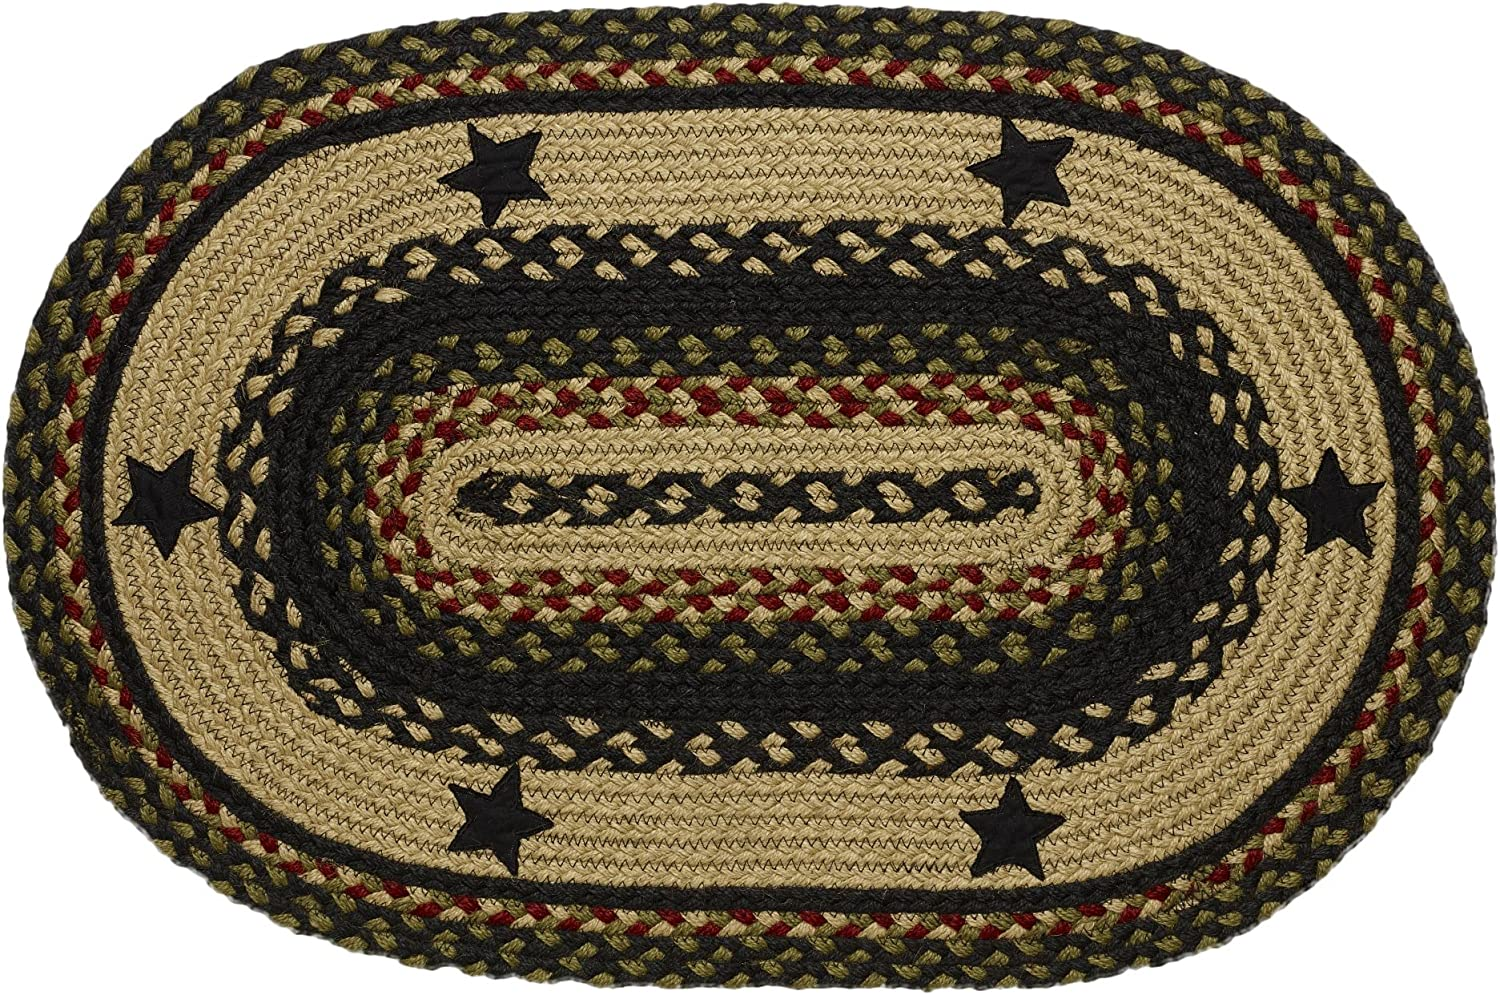 """IHF Home Decor Tartan Star Braided Rug 20"""" x 30"""" to 8'x10' Oval Accent Floor Carpet Natural Jute Material Doormat   Black, Red, Green, Cream Woven Collection (5'x8')"""